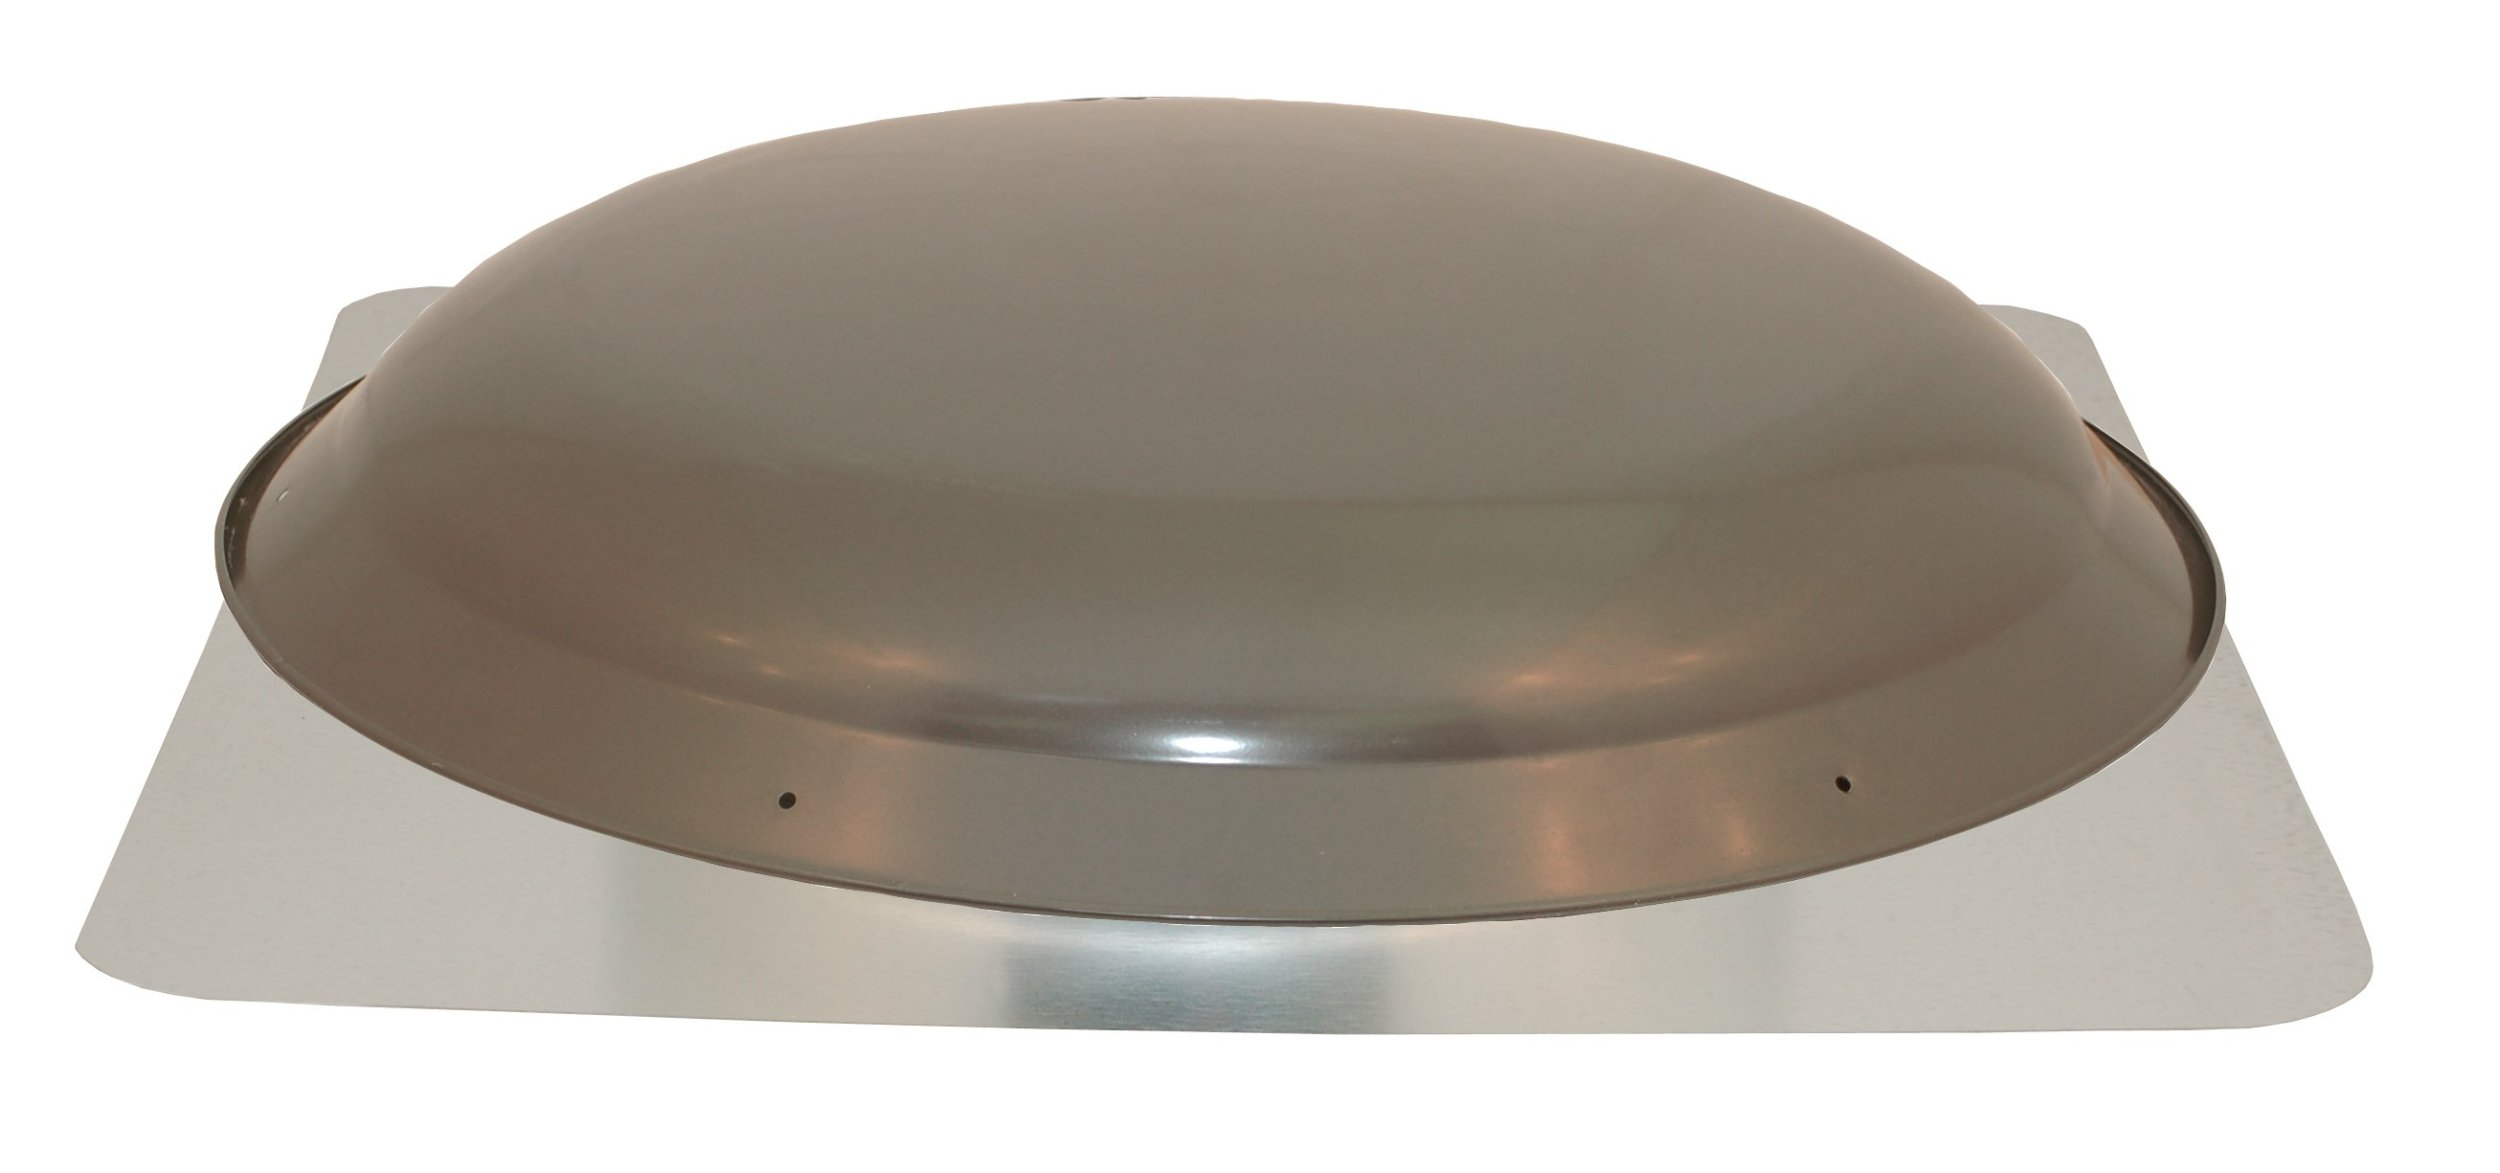 Cool Attic CX2001AMWG Power Attic Roof Mount Ventilator with 60-Hz Motor and Steel Flange, Weathered Grey Galvanized Steel Dome